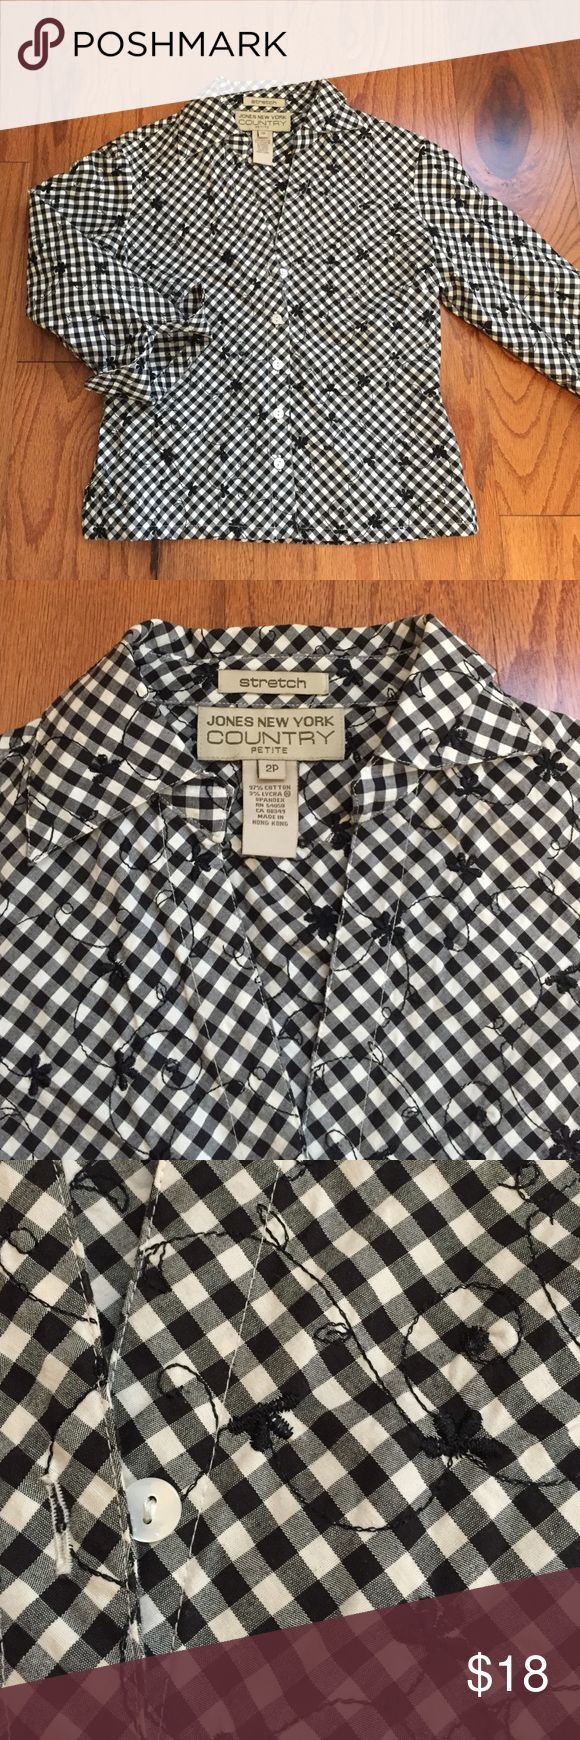 """JONES NY COUNTRY stretch black plaid & flower top Jones NY Country: Very cute short stretch, 3/4 cuffed sleeve, collard with 5 white buttons top. 97% cotton, 3% Lycra / spandex in machine washable fabric . Black & white plaid with small black flower embroidery, low v-neckline. Overall length 20"""". PREFECT CONDITION JONES NEW YORK COUNTRY Tops Button Down Shirts"""